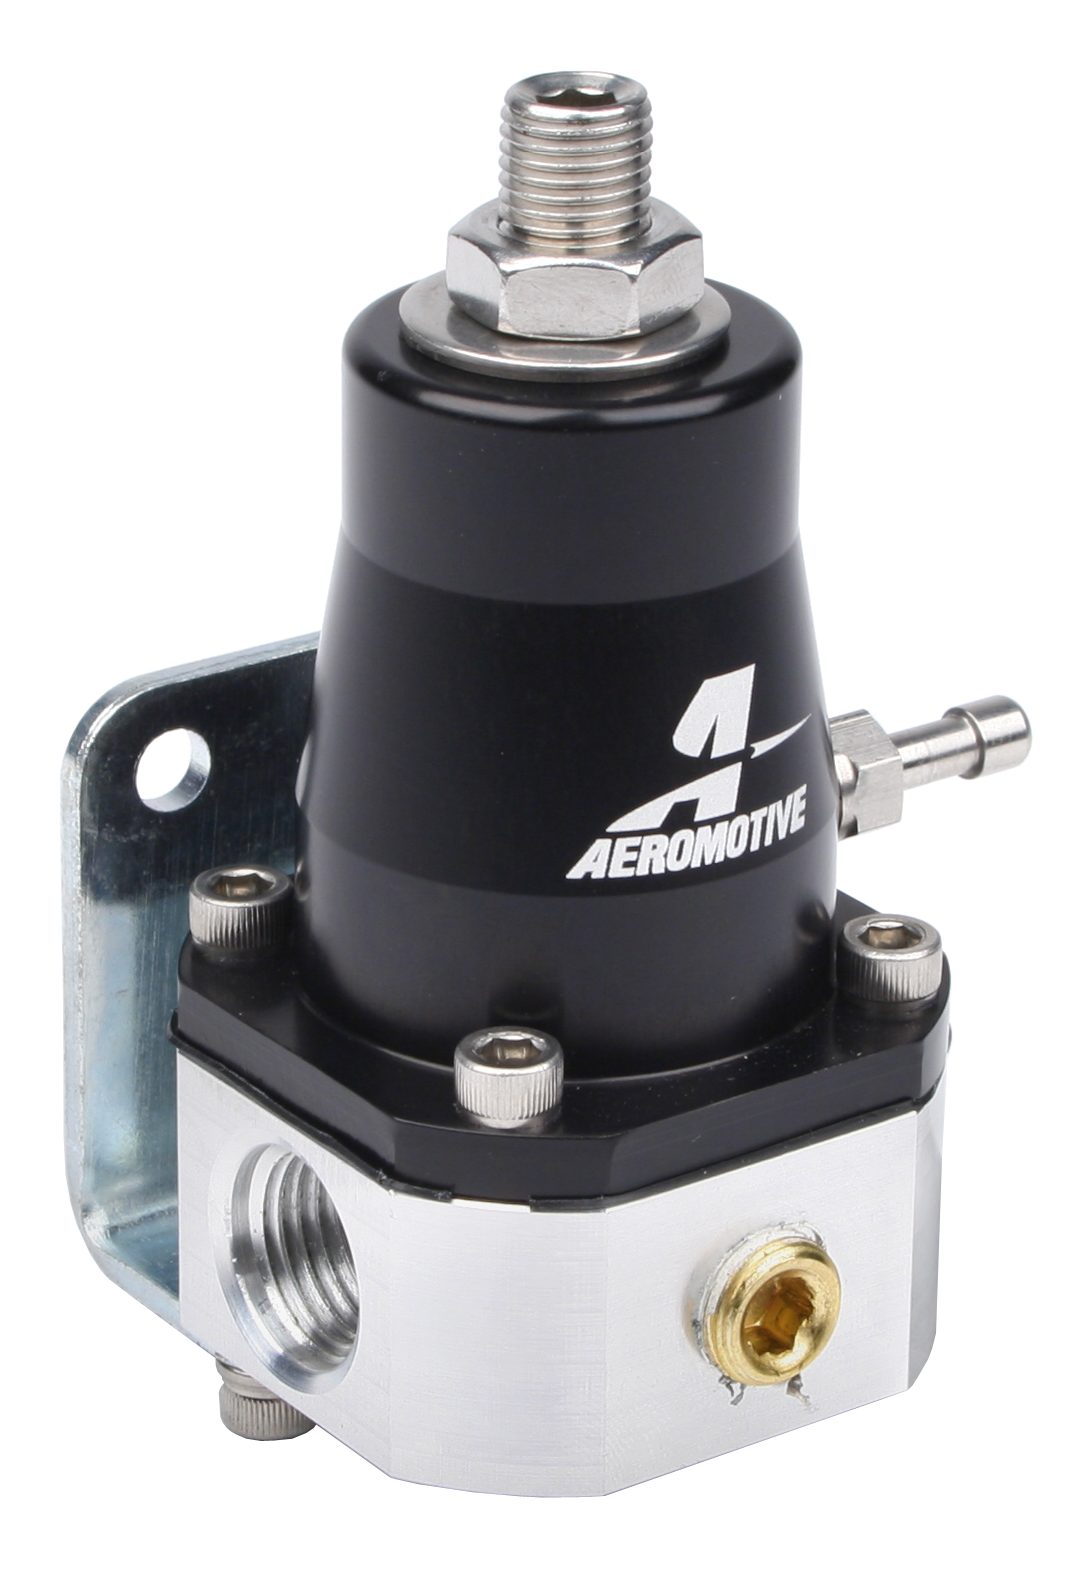 Regulador de Nafta Aeromotive 13129